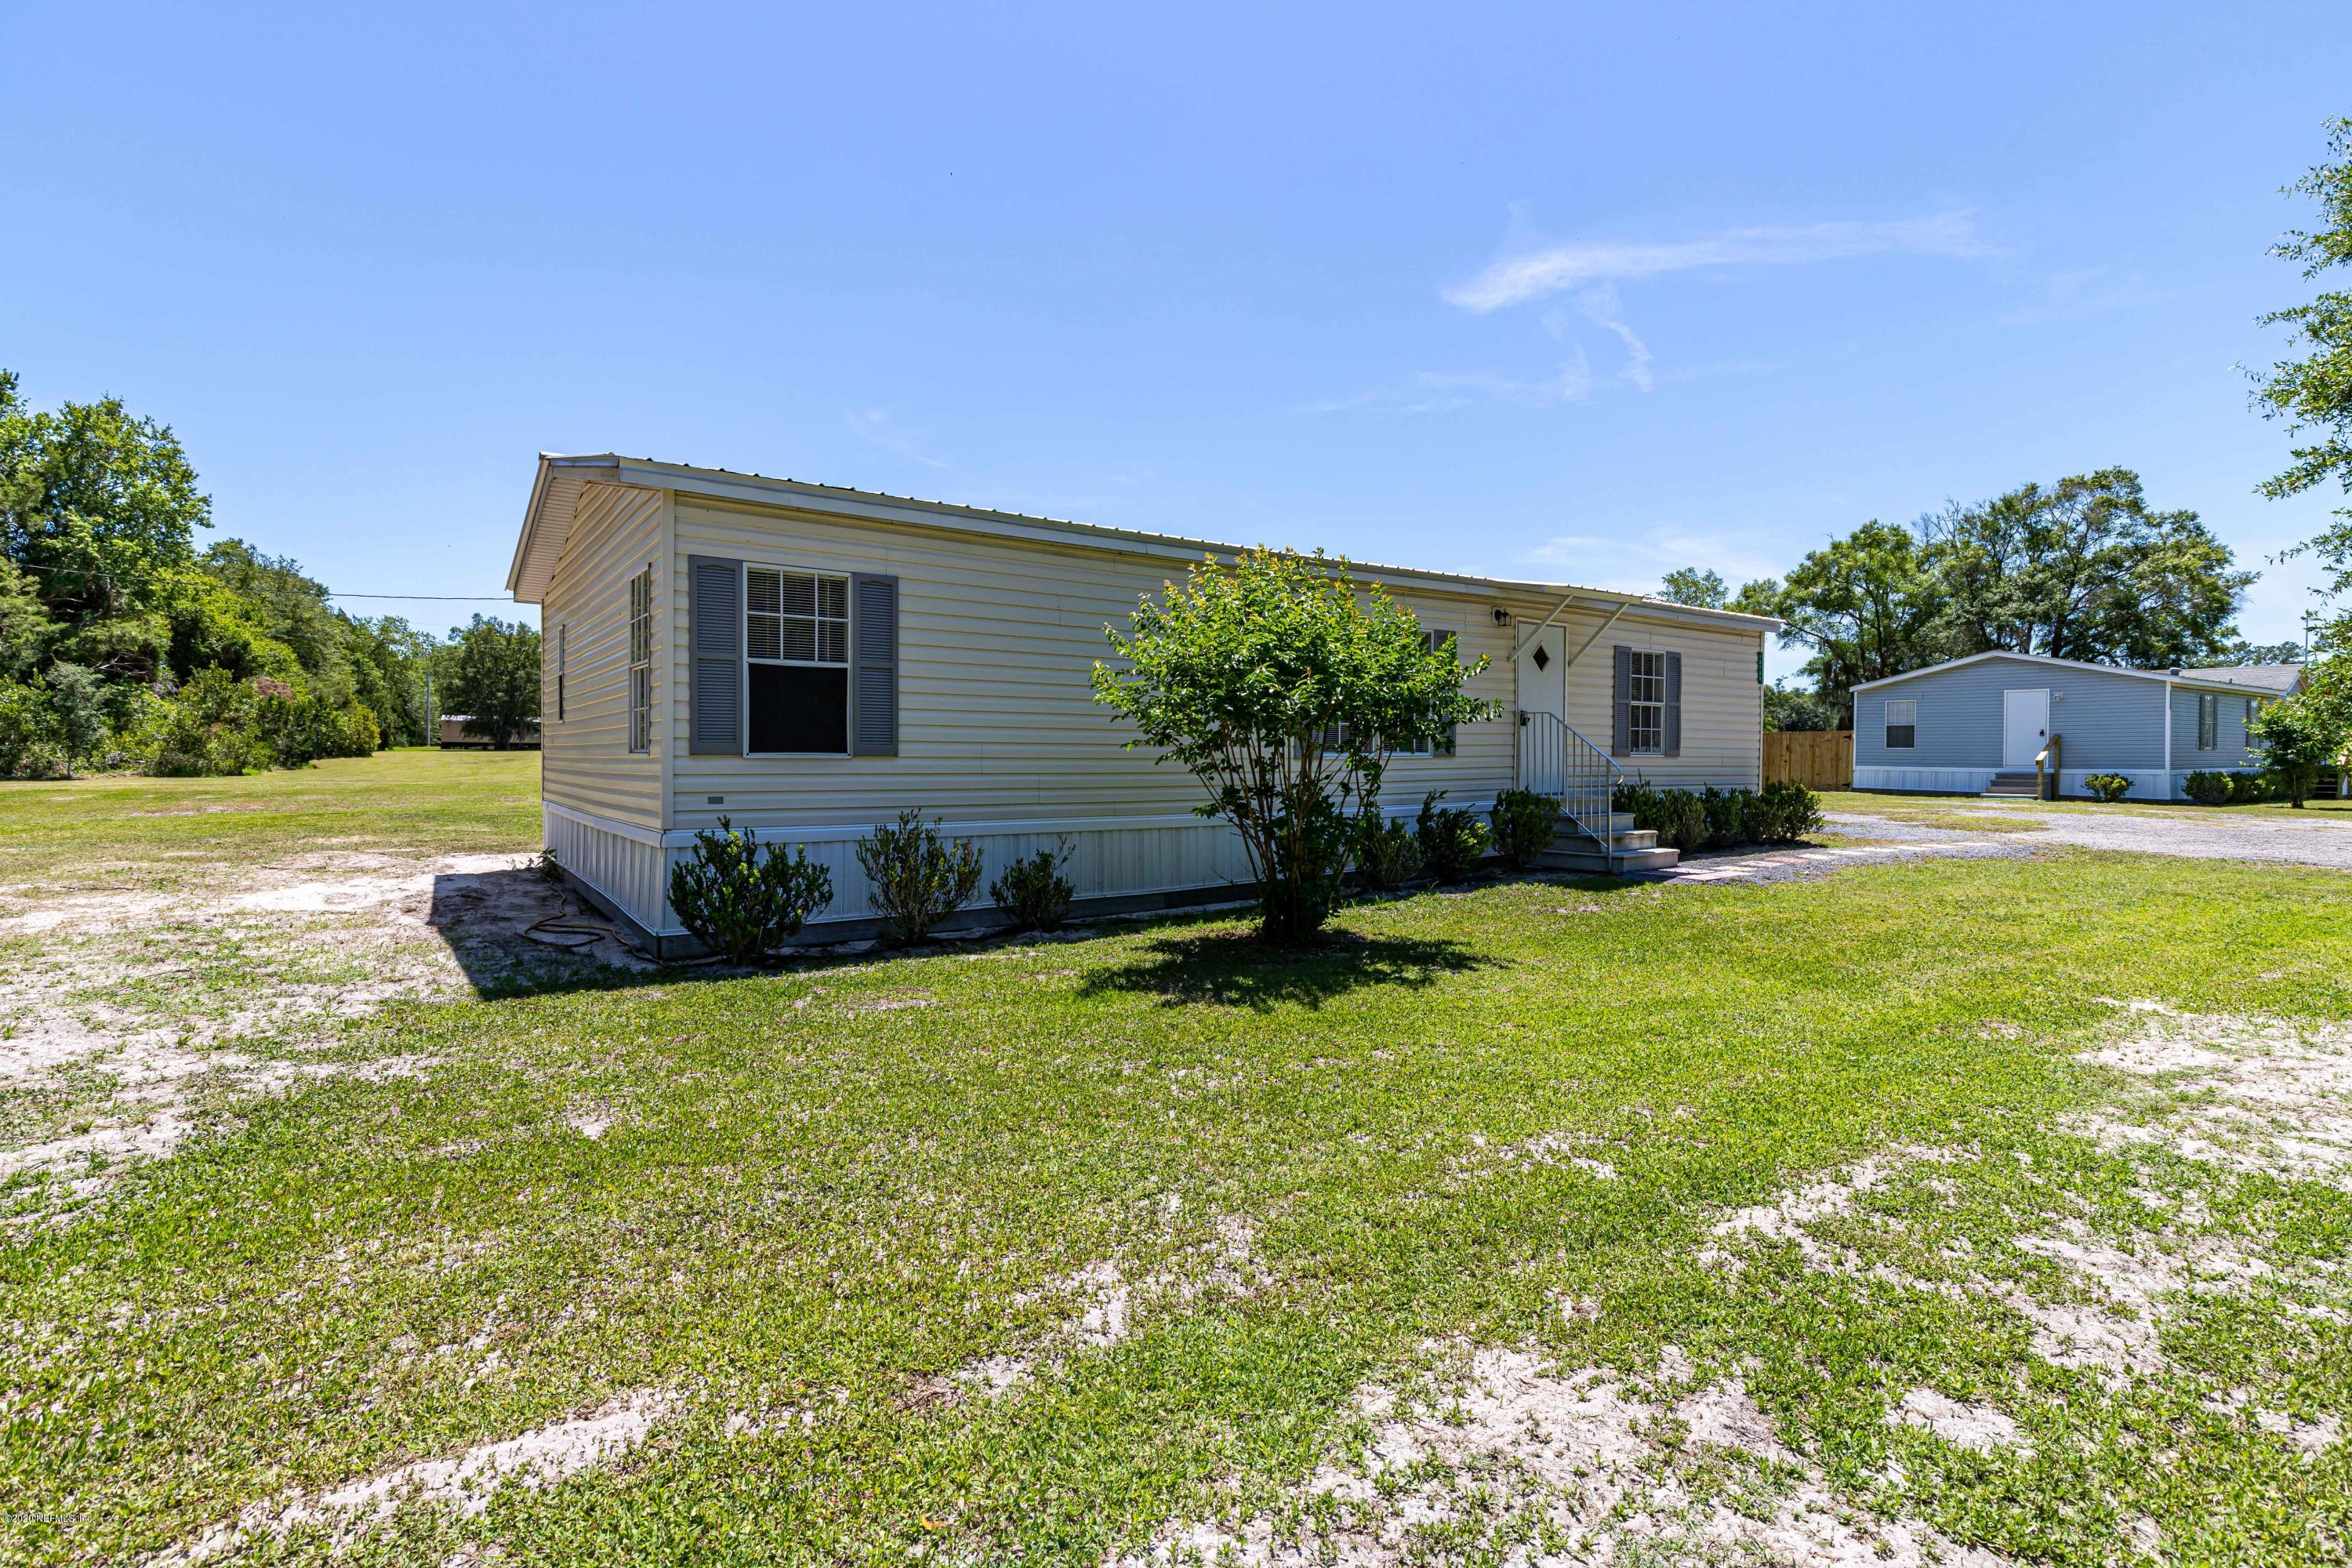 10725 COUNTY ROAD 221, STARKE, FLORIDA 32091, 3 Bedrooms Bedrooms, ,2 BathroomsBathrooms,Residential,For sale,COUNTY ROAD 221,1052882